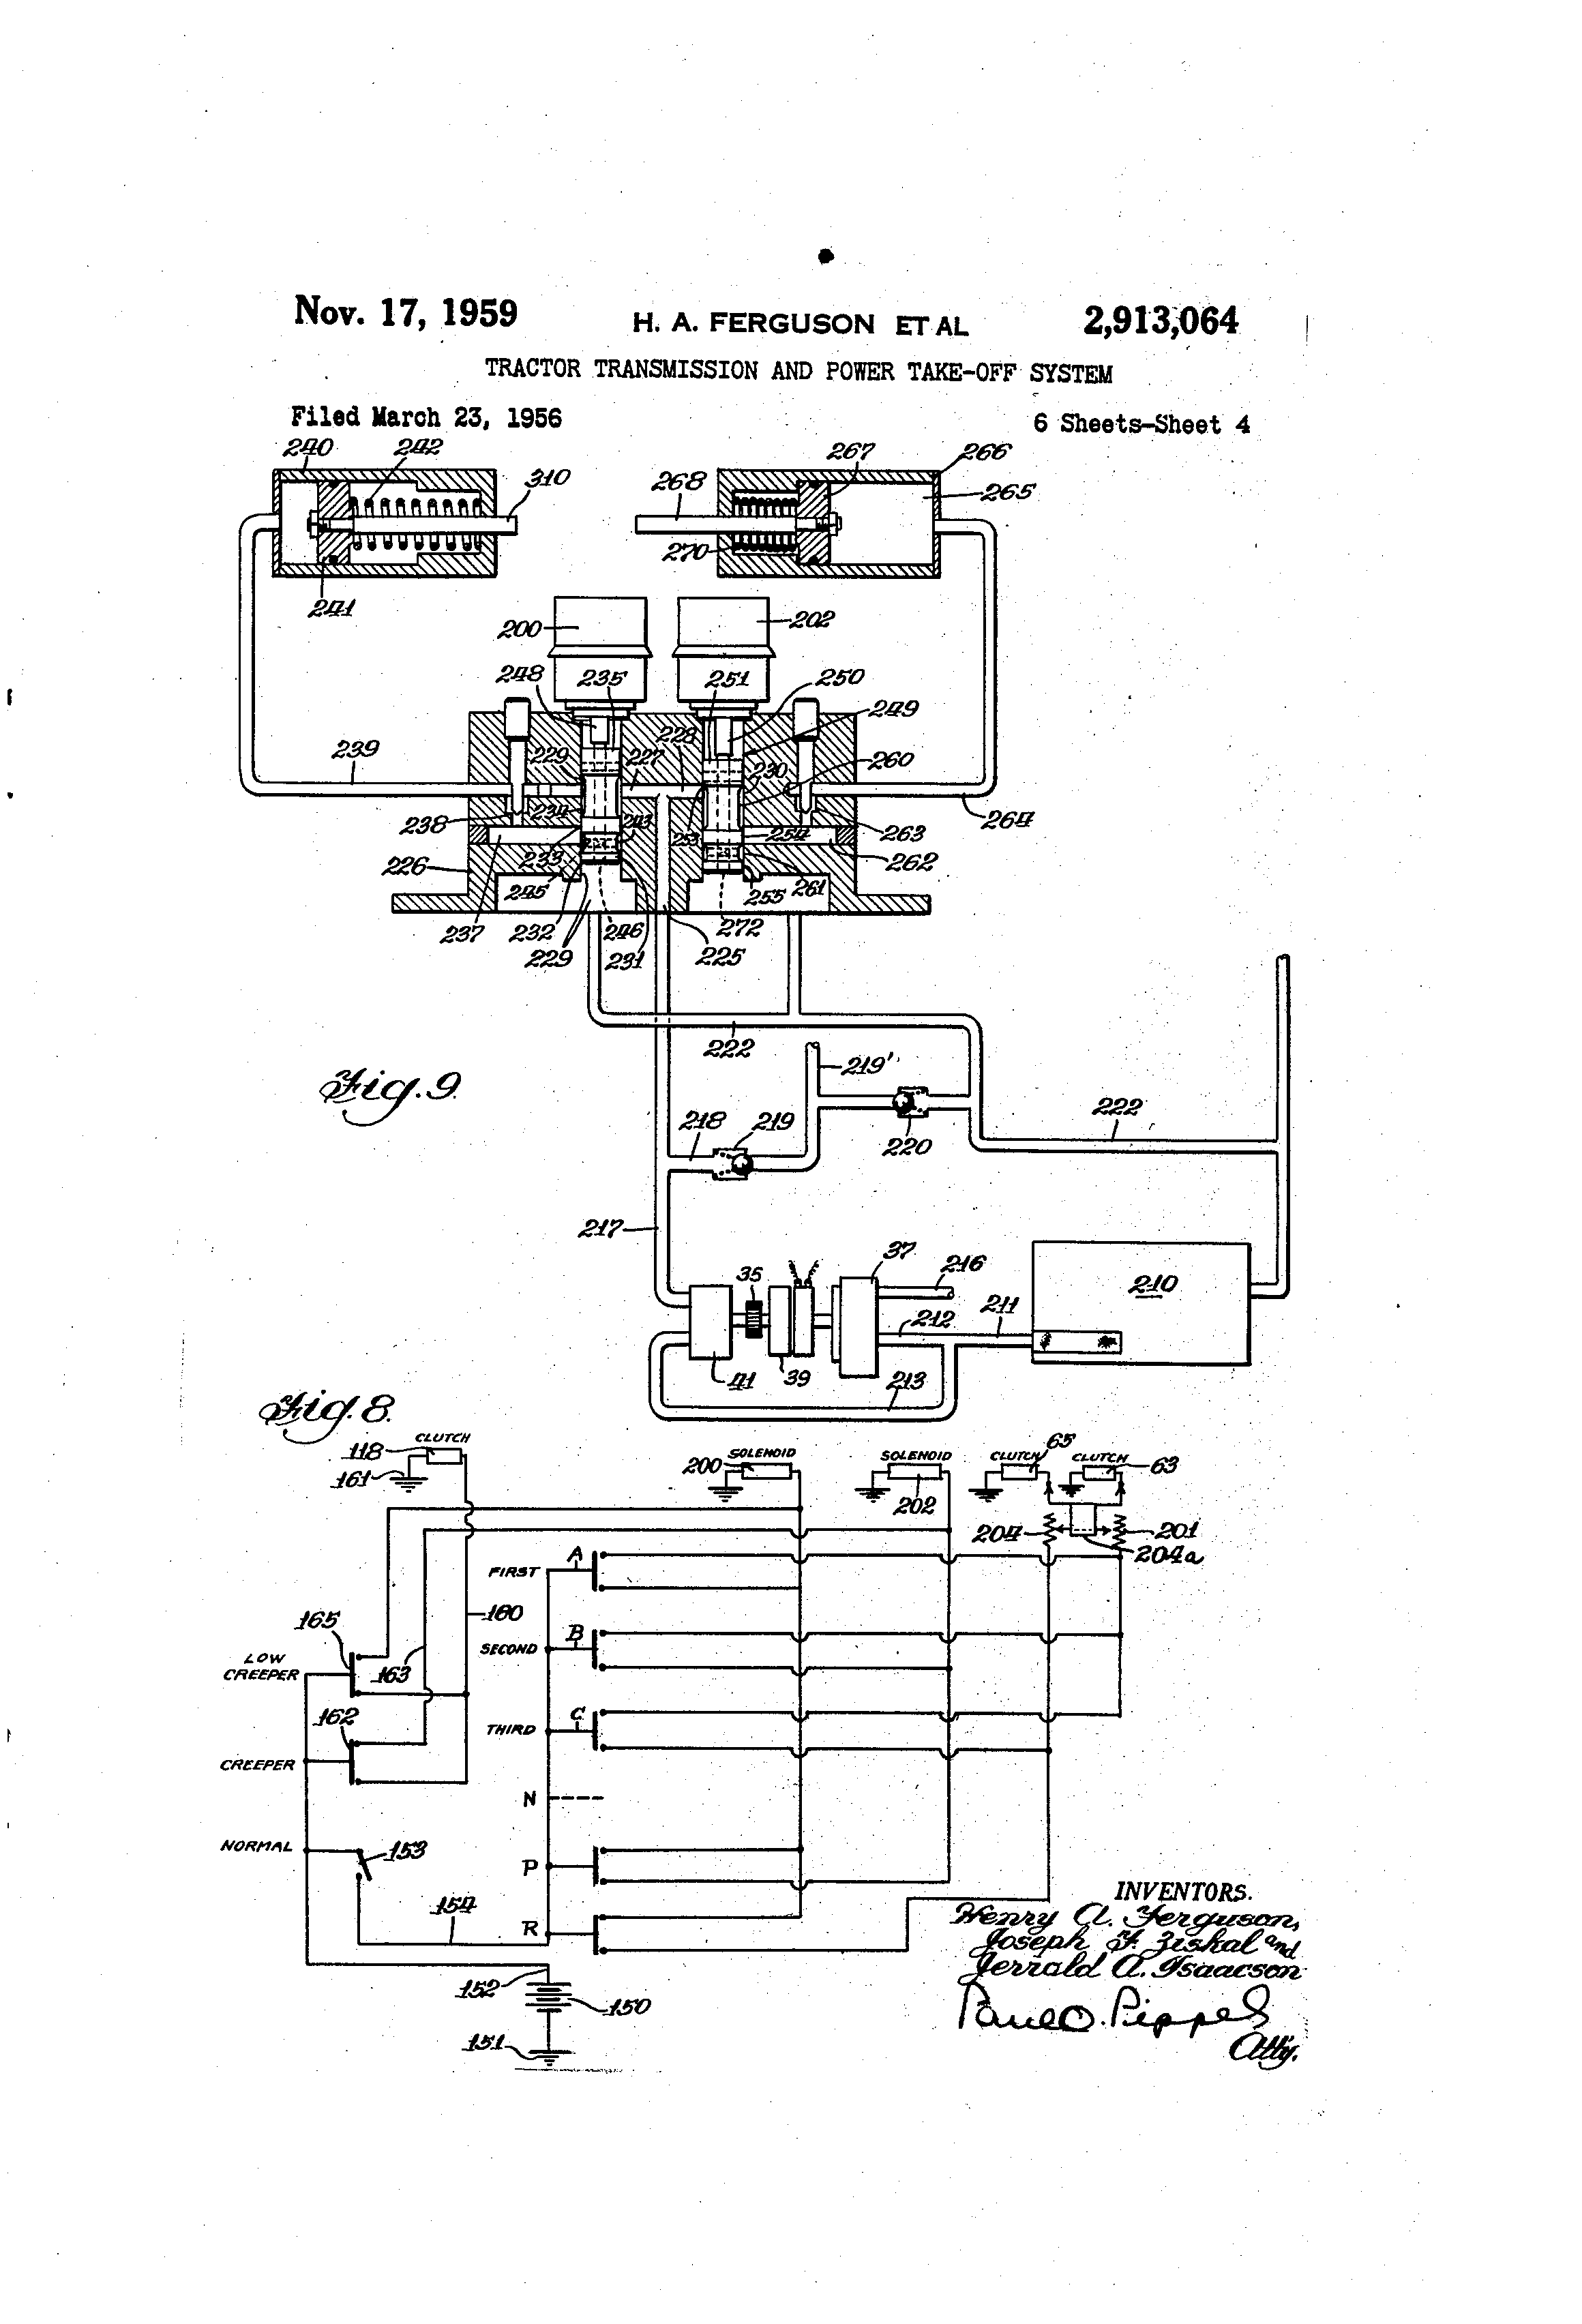 Tractor Transmission System : Patent us tractor transmission and power take off